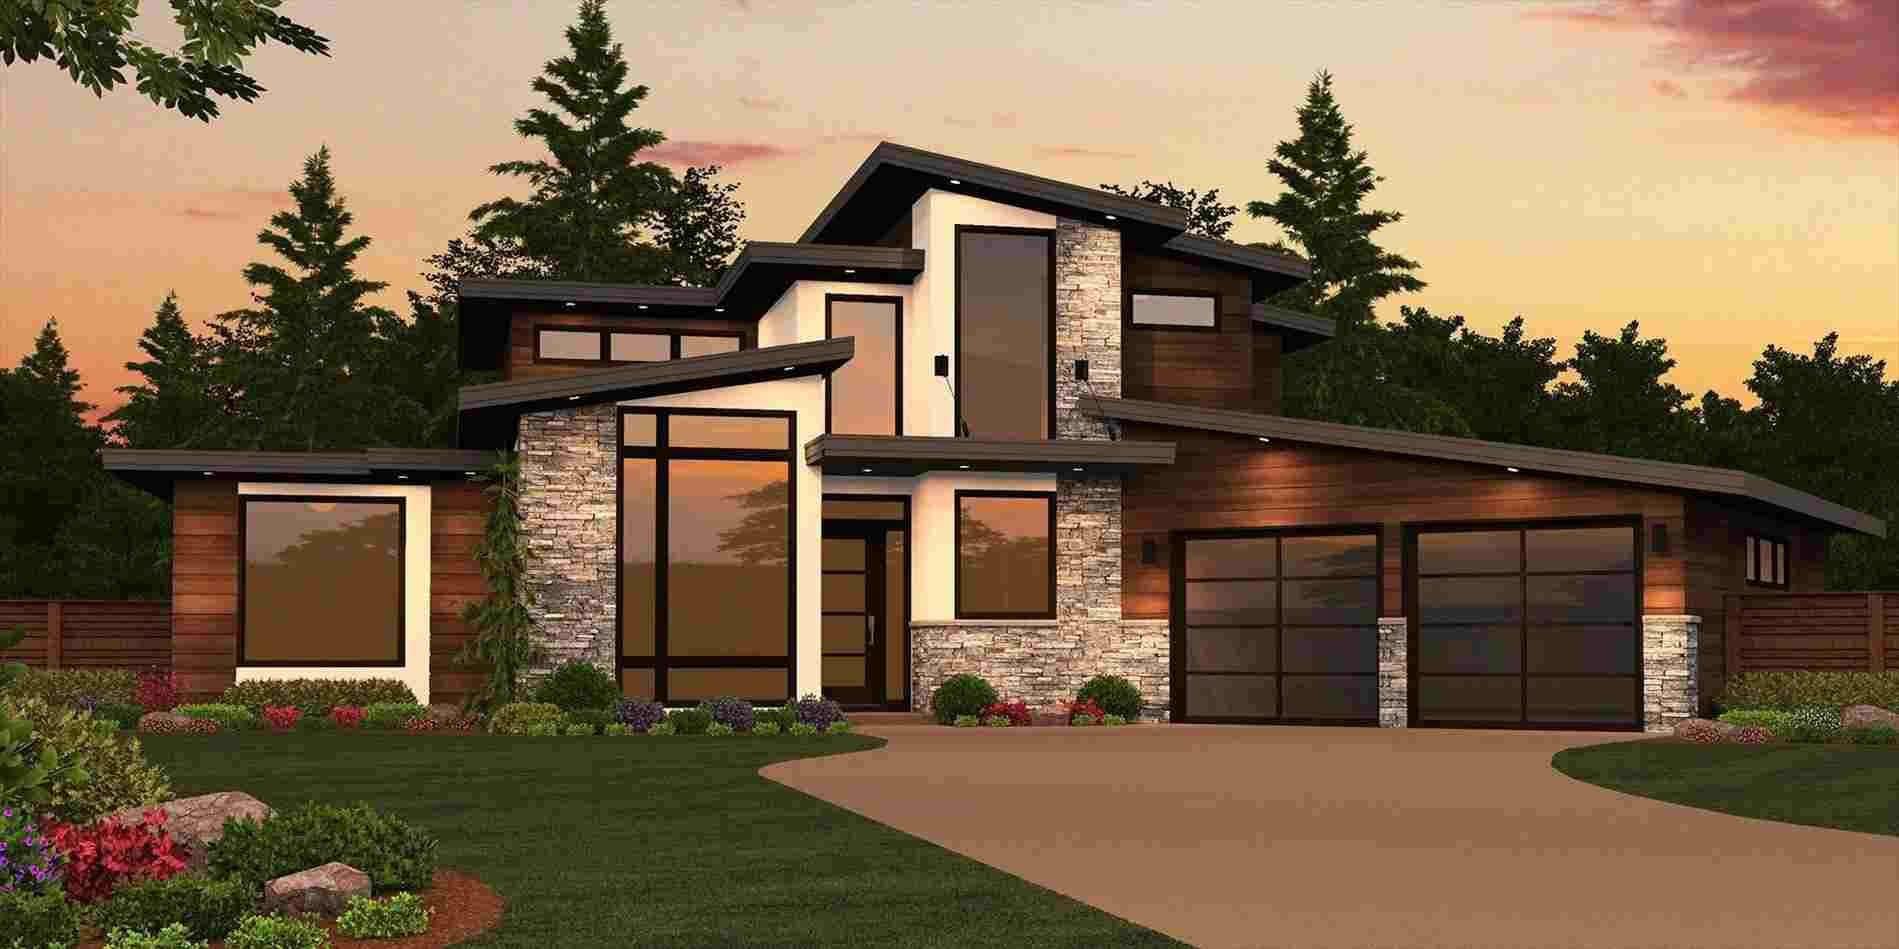 Image Result For Modern Bloxburg House Ideas Small